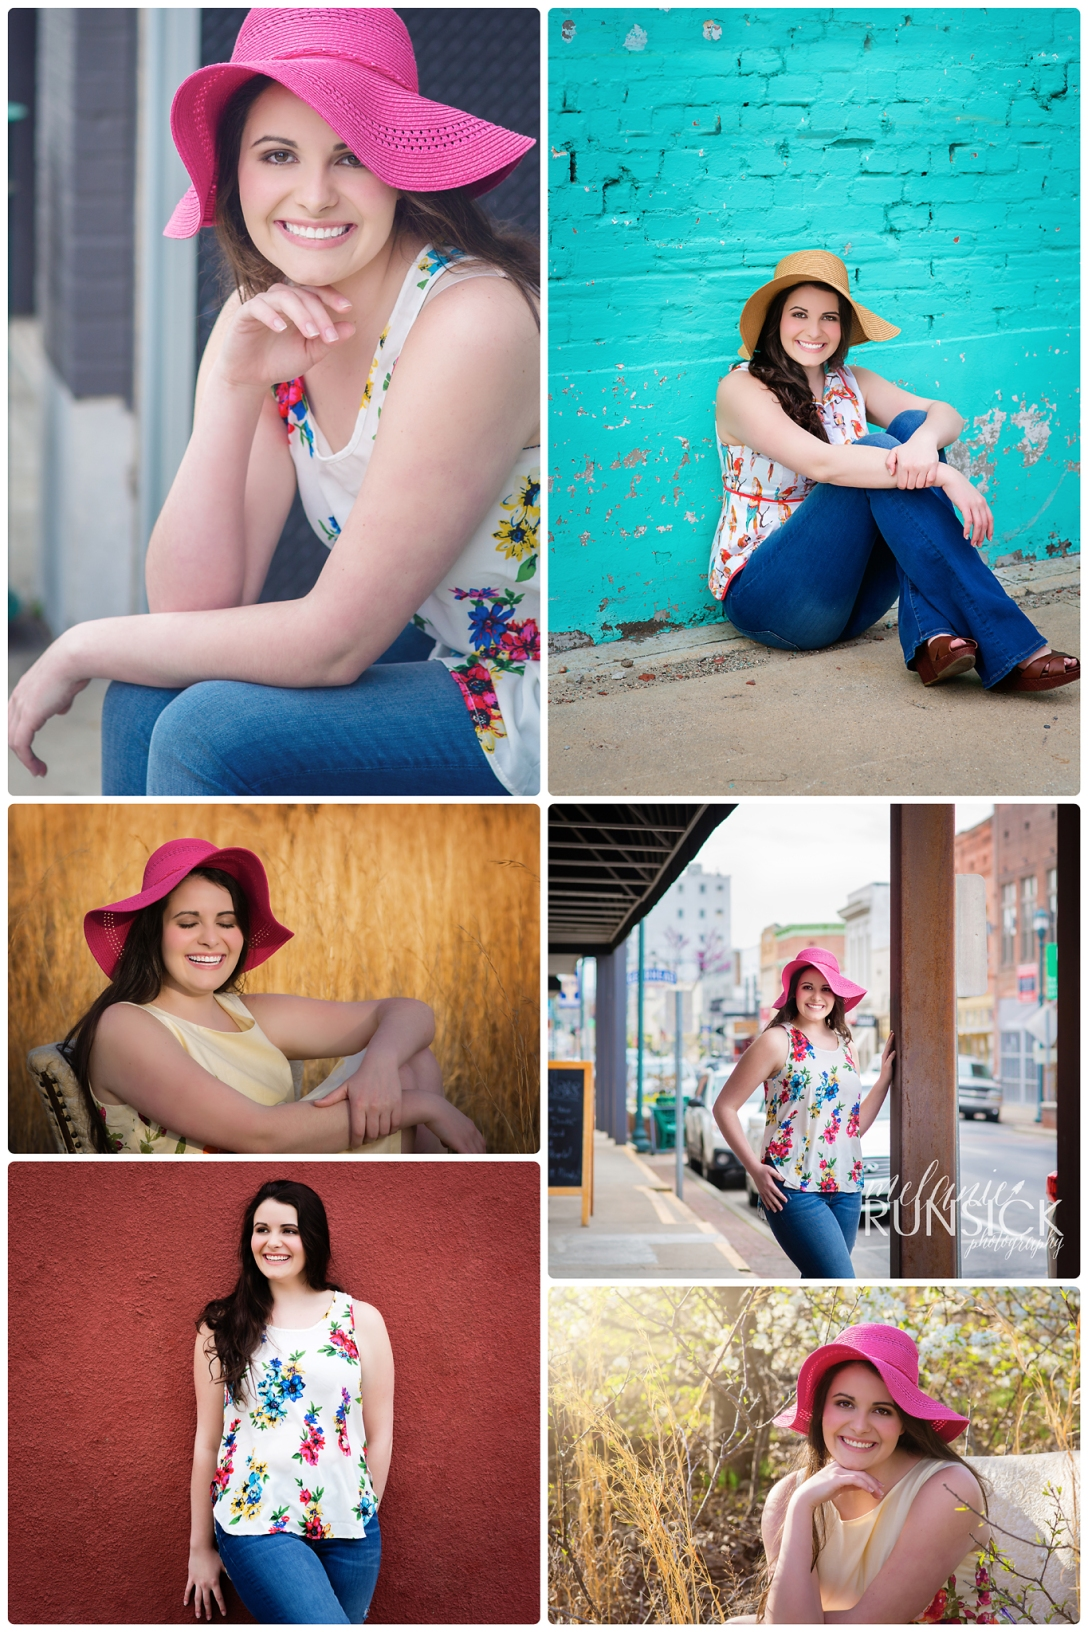 Jonesboro-Tuckerman-Paragould-Bay-Lake City-Batesville- Arkansas-High-School-Senior-Photographer